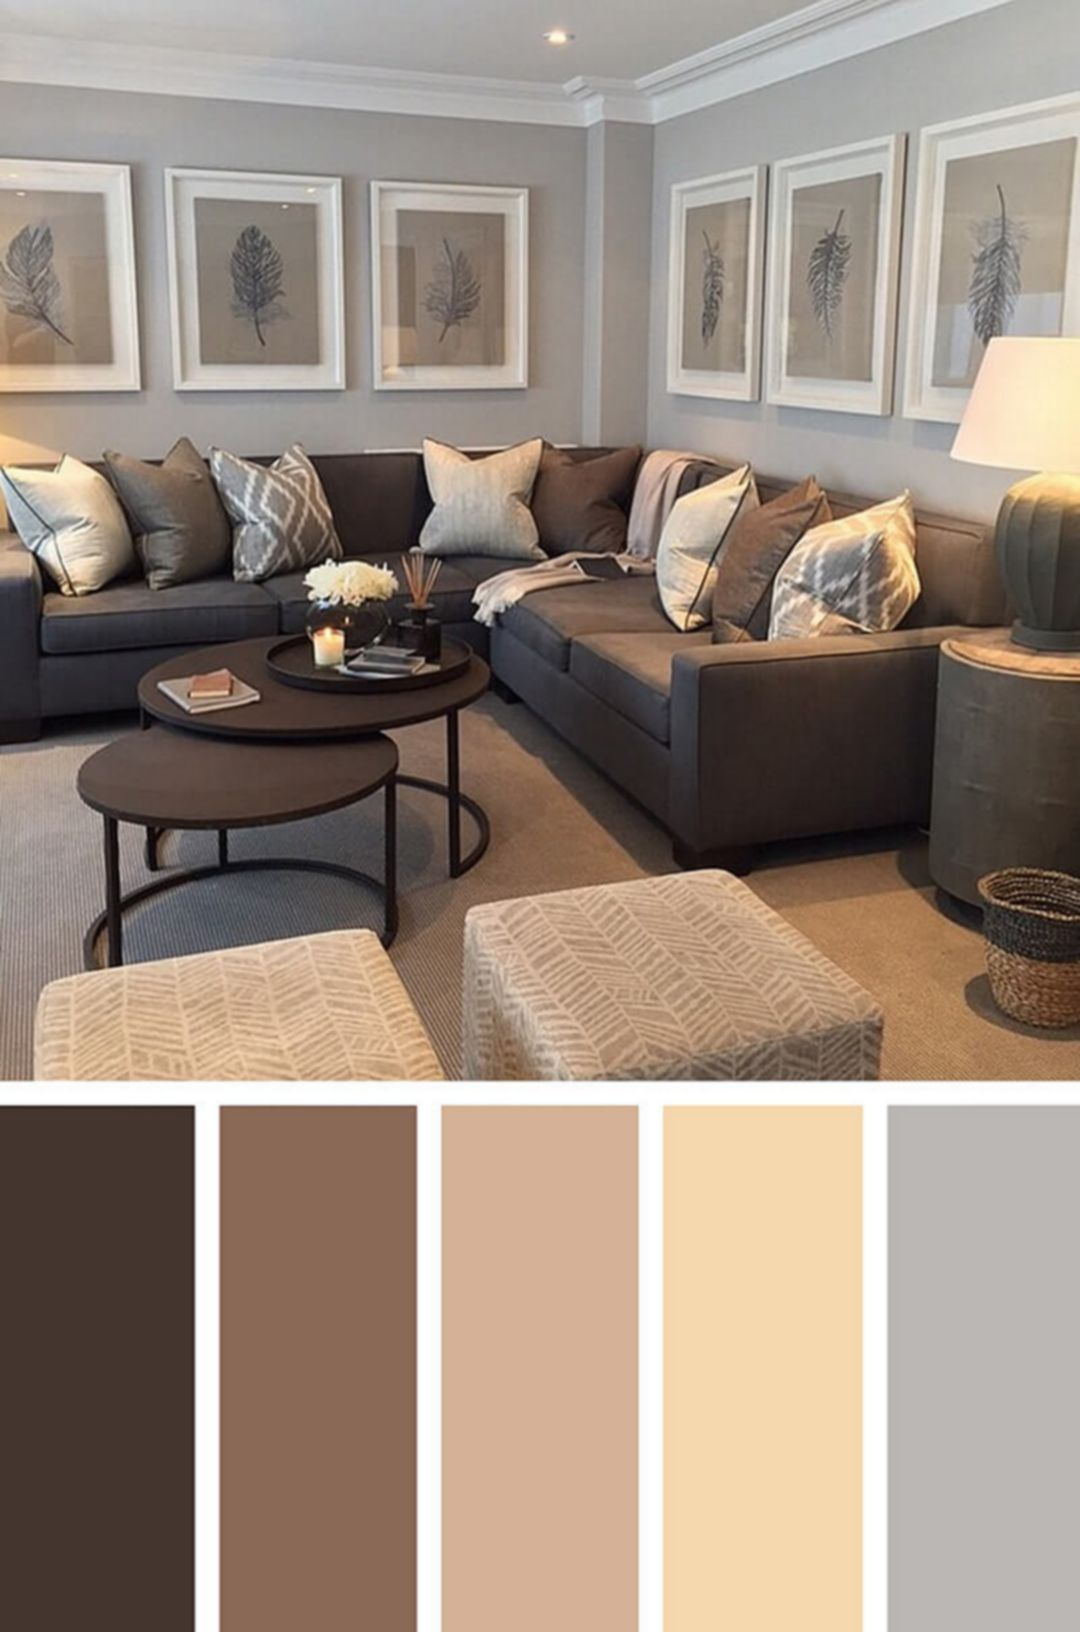 Phenomenon  Best Color Harmony Ideas For Living Room Looks More Comfortable Https